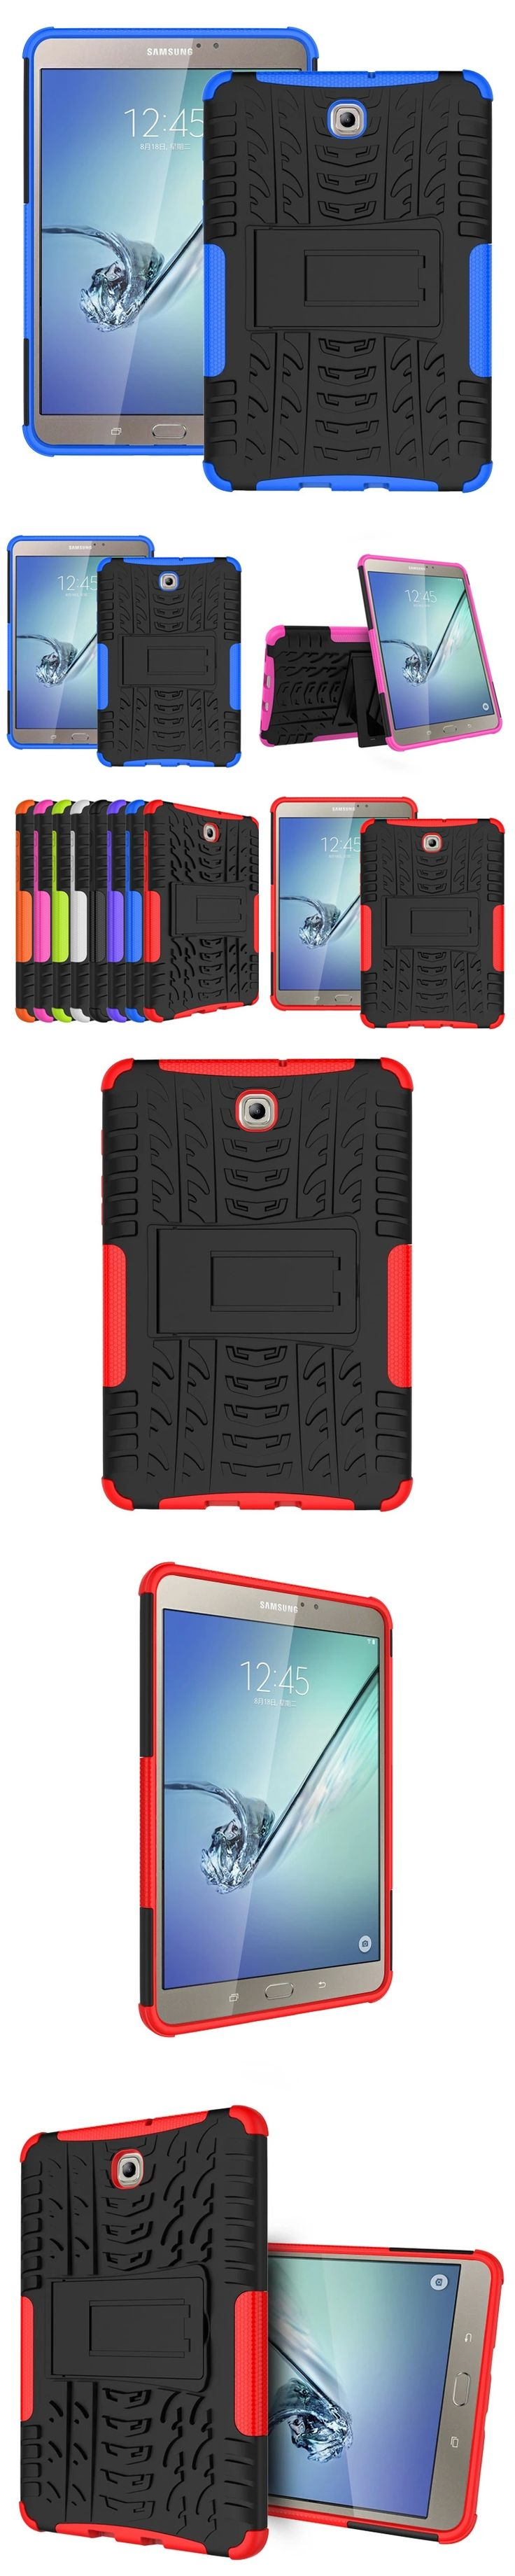 HH Heavy Duty Armor Hybrid TPU PC Hard Cover Case for Samsung GALAXY Tab S2 8.0'' SM T710 T715 T713 T719 tablet PC Cover Case